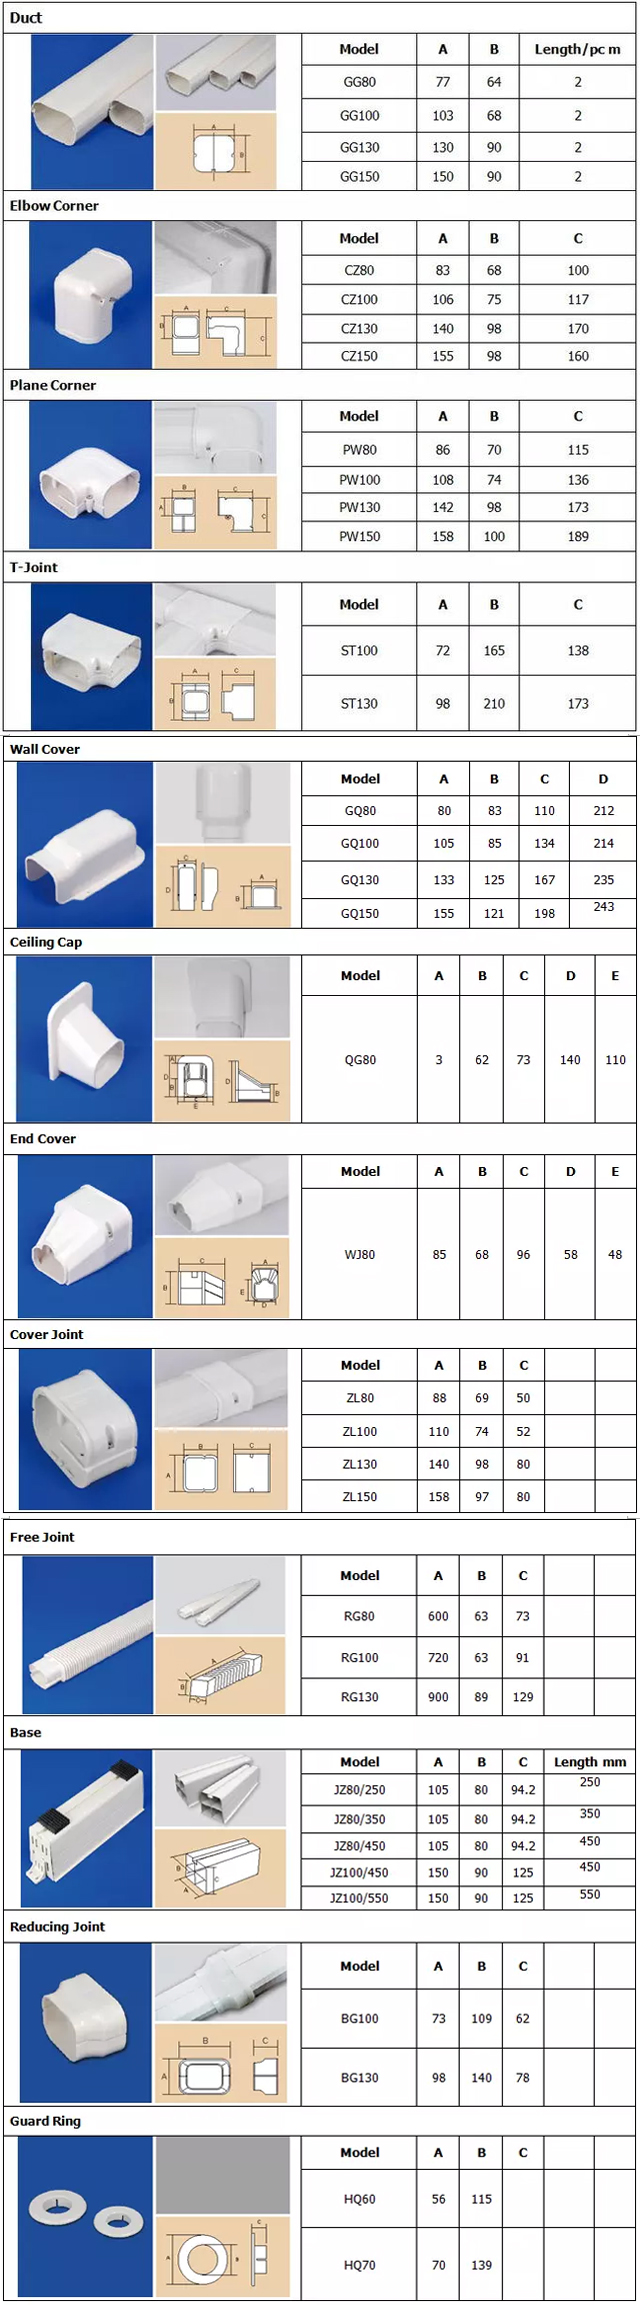 100mm White PVC Decorative Duct Kits Split Air Conditioner Pipe Cover Joint Straight Coupling